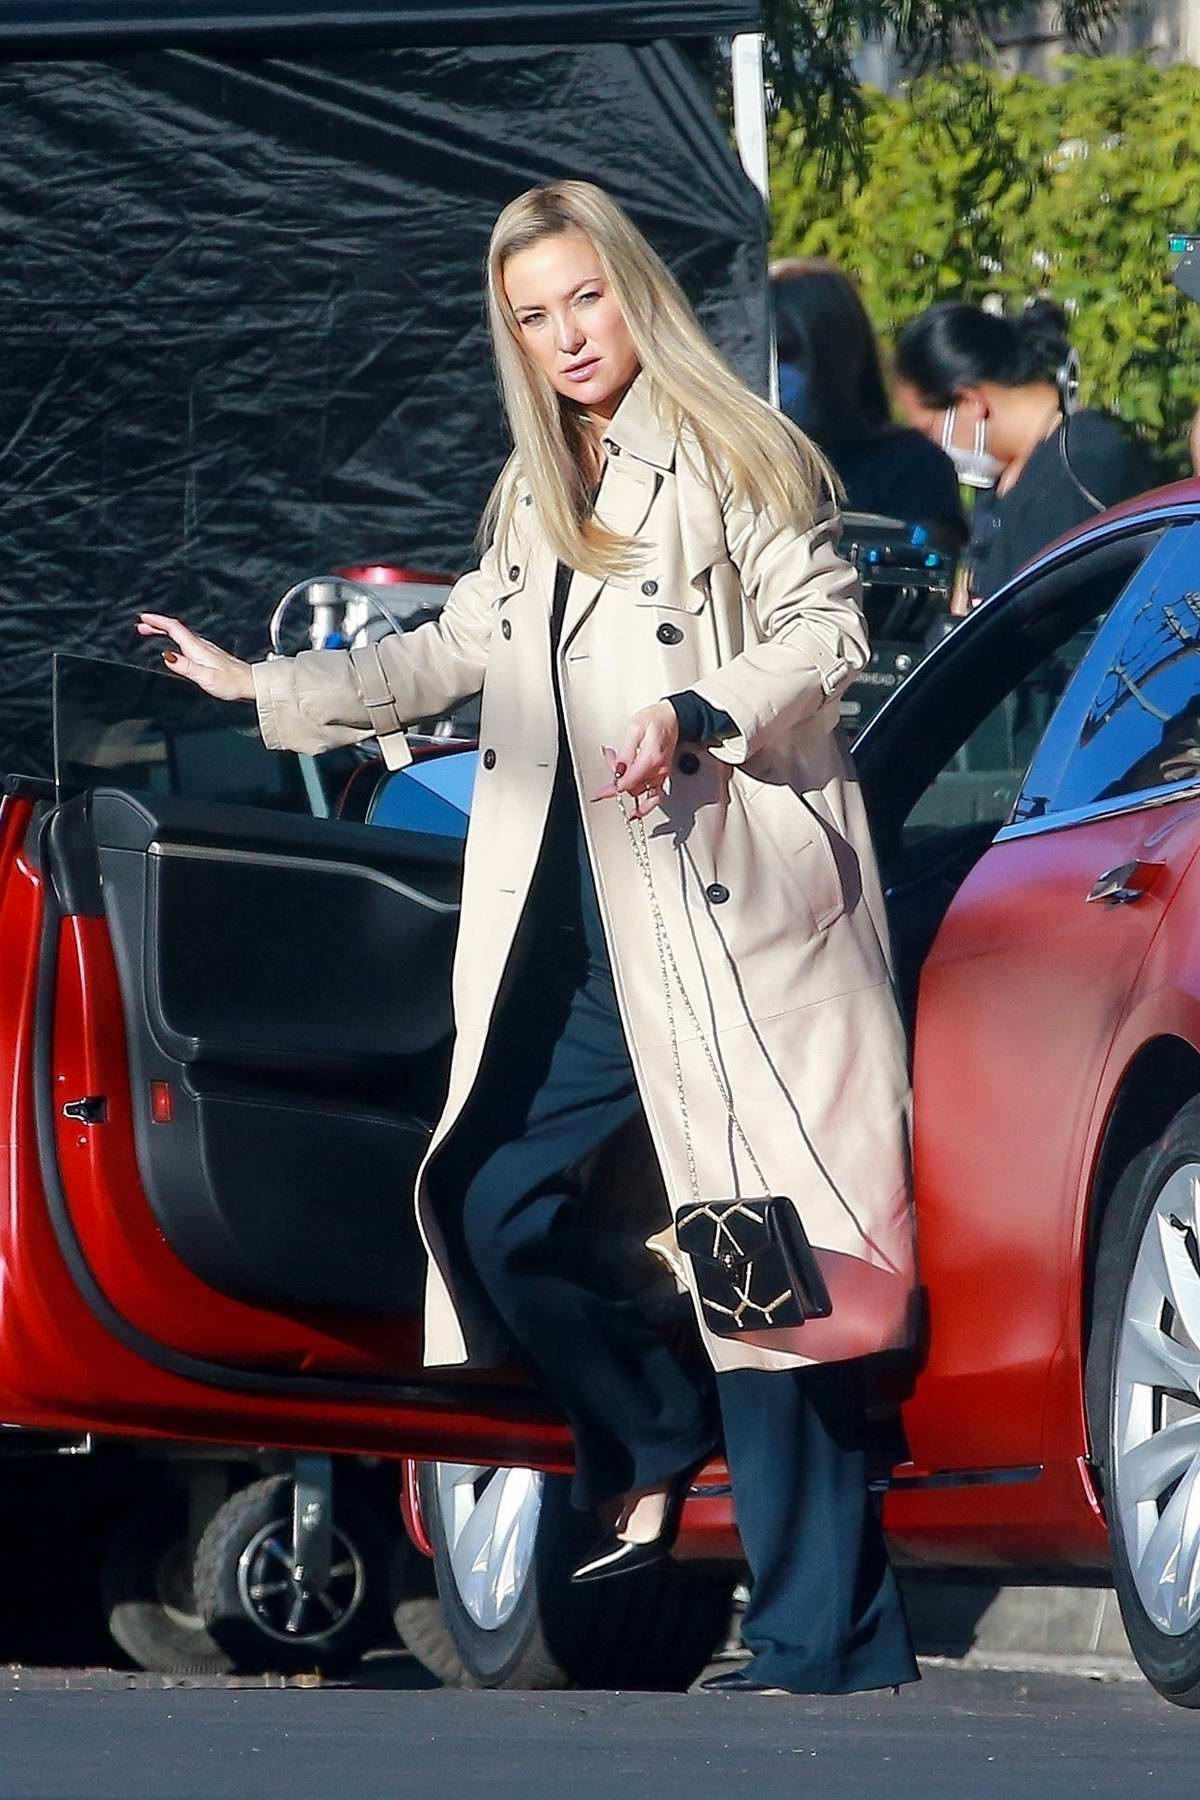 Kate Hudson continues filming scenes for 'Truth Be Told' in Los Angeles